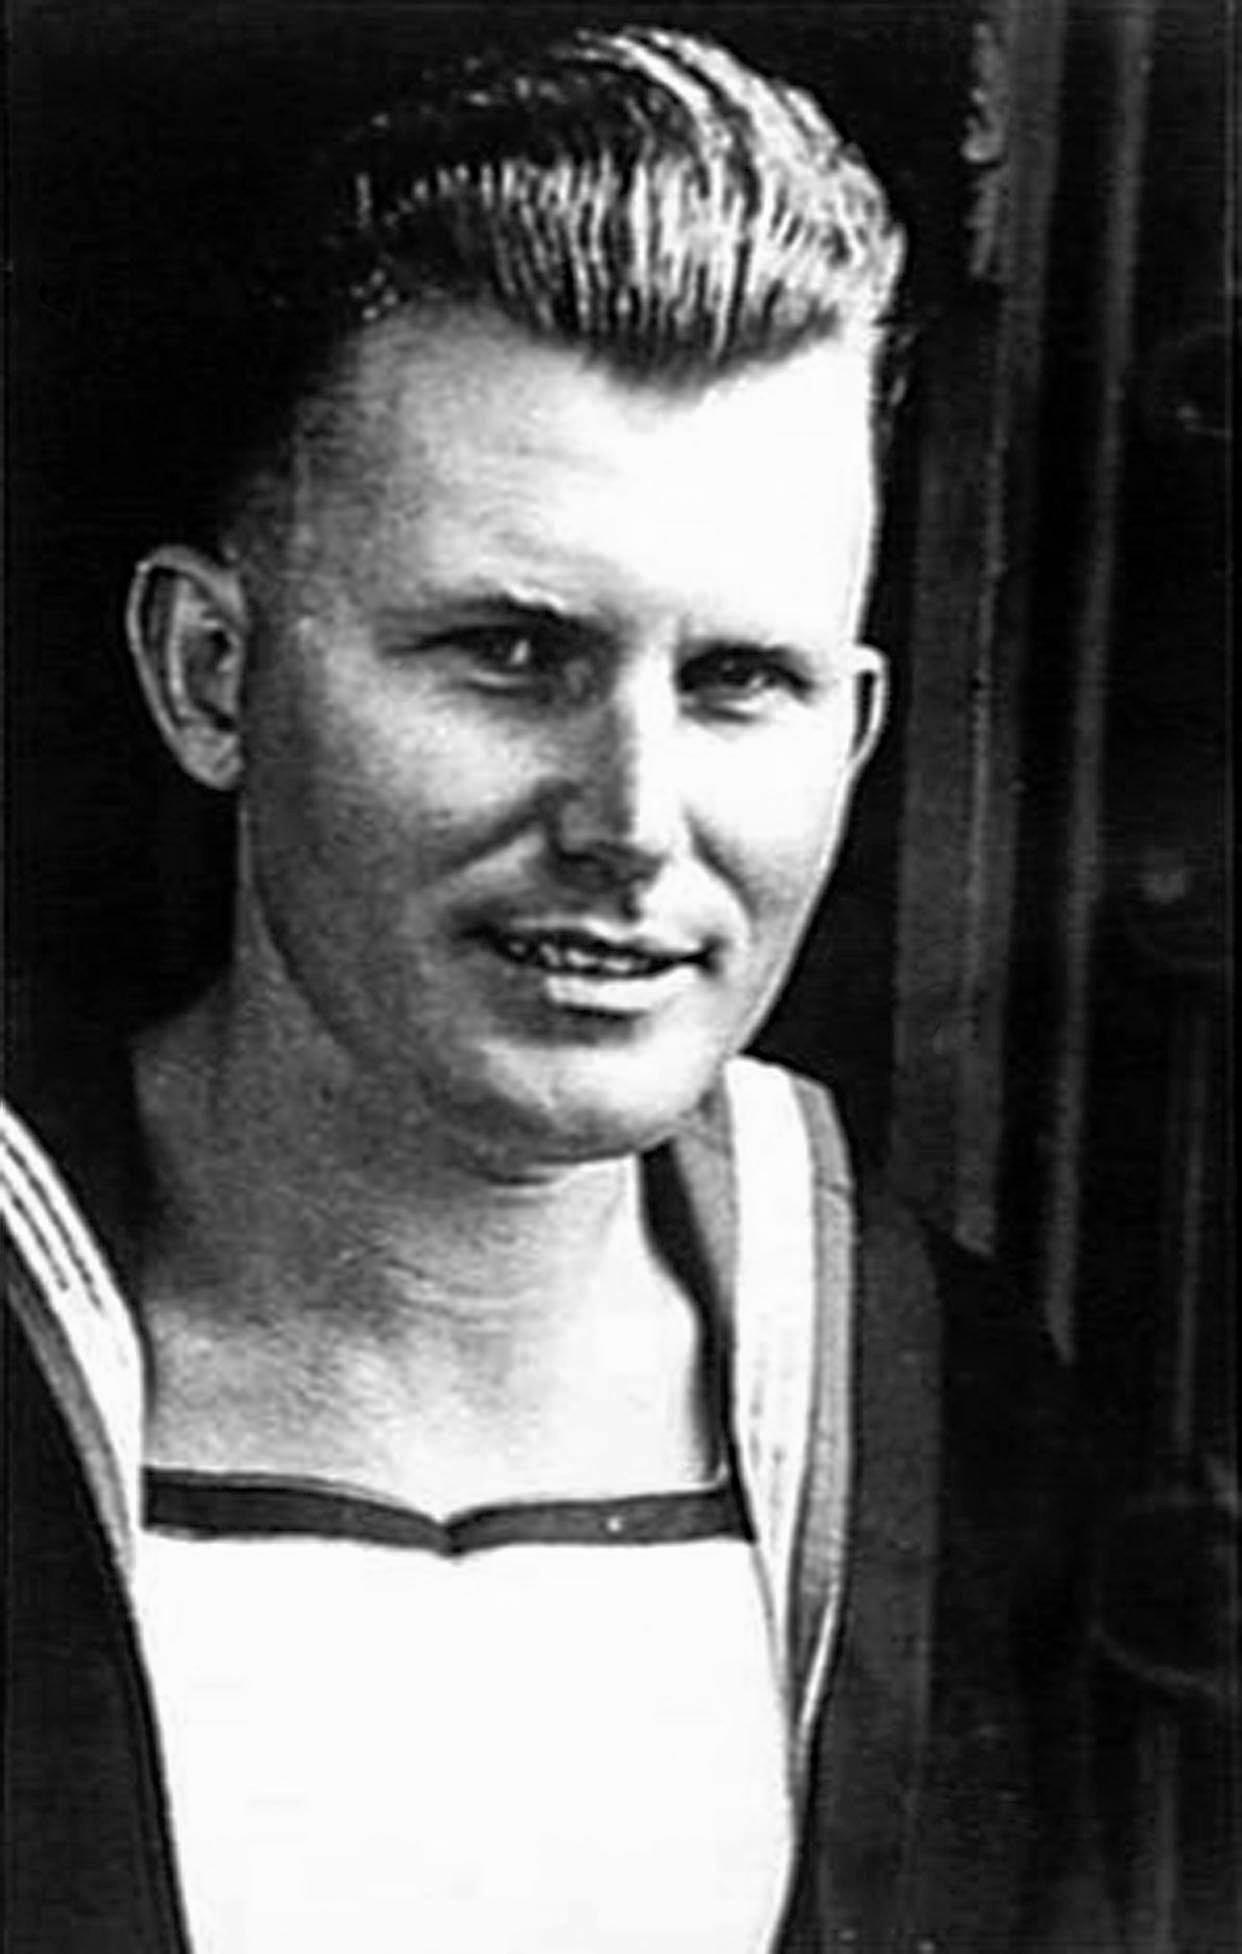 SPECIAL EFFORT: Able Seaman Walter Gordon Falls served with the infamous Z Force.